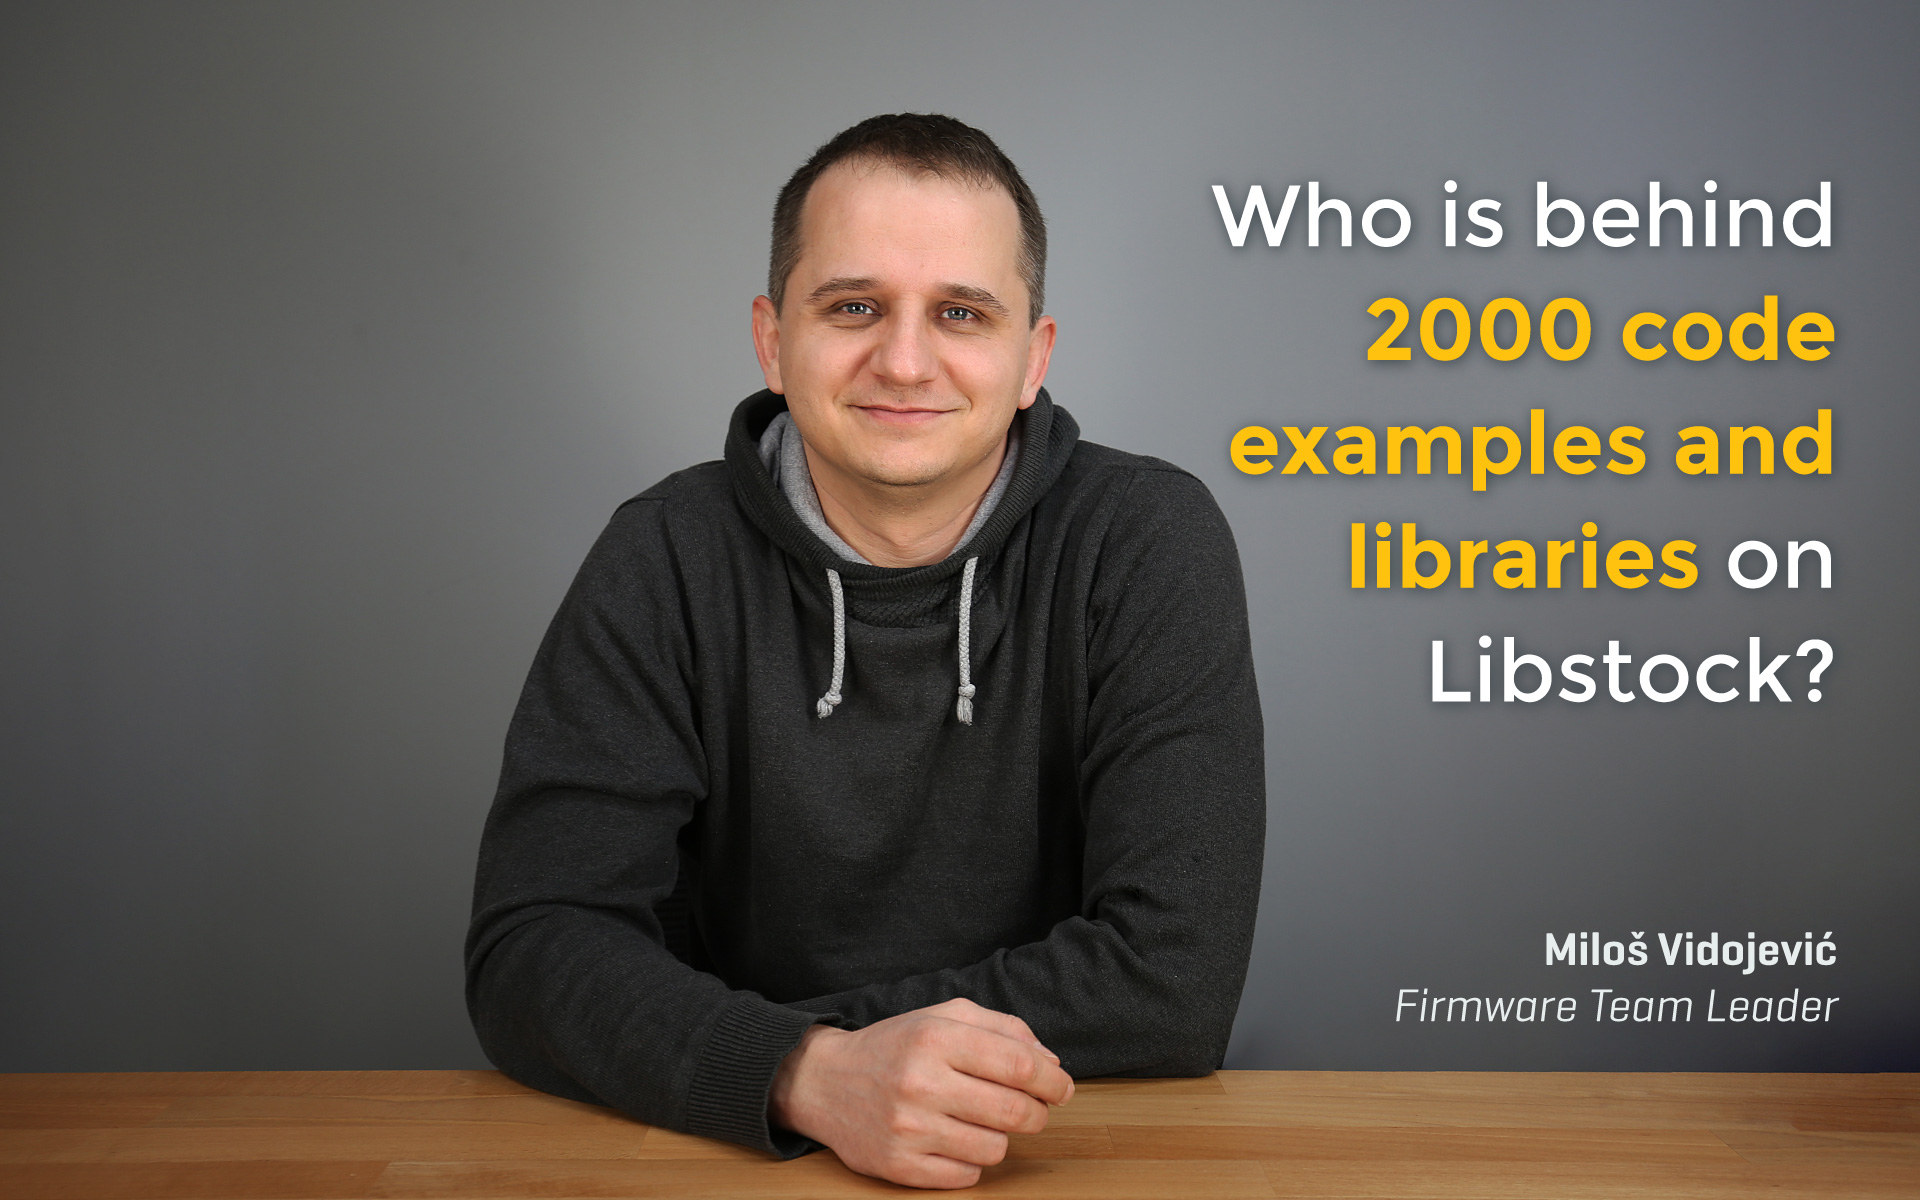 Over 2000 libraries and examples on Libstock - interview